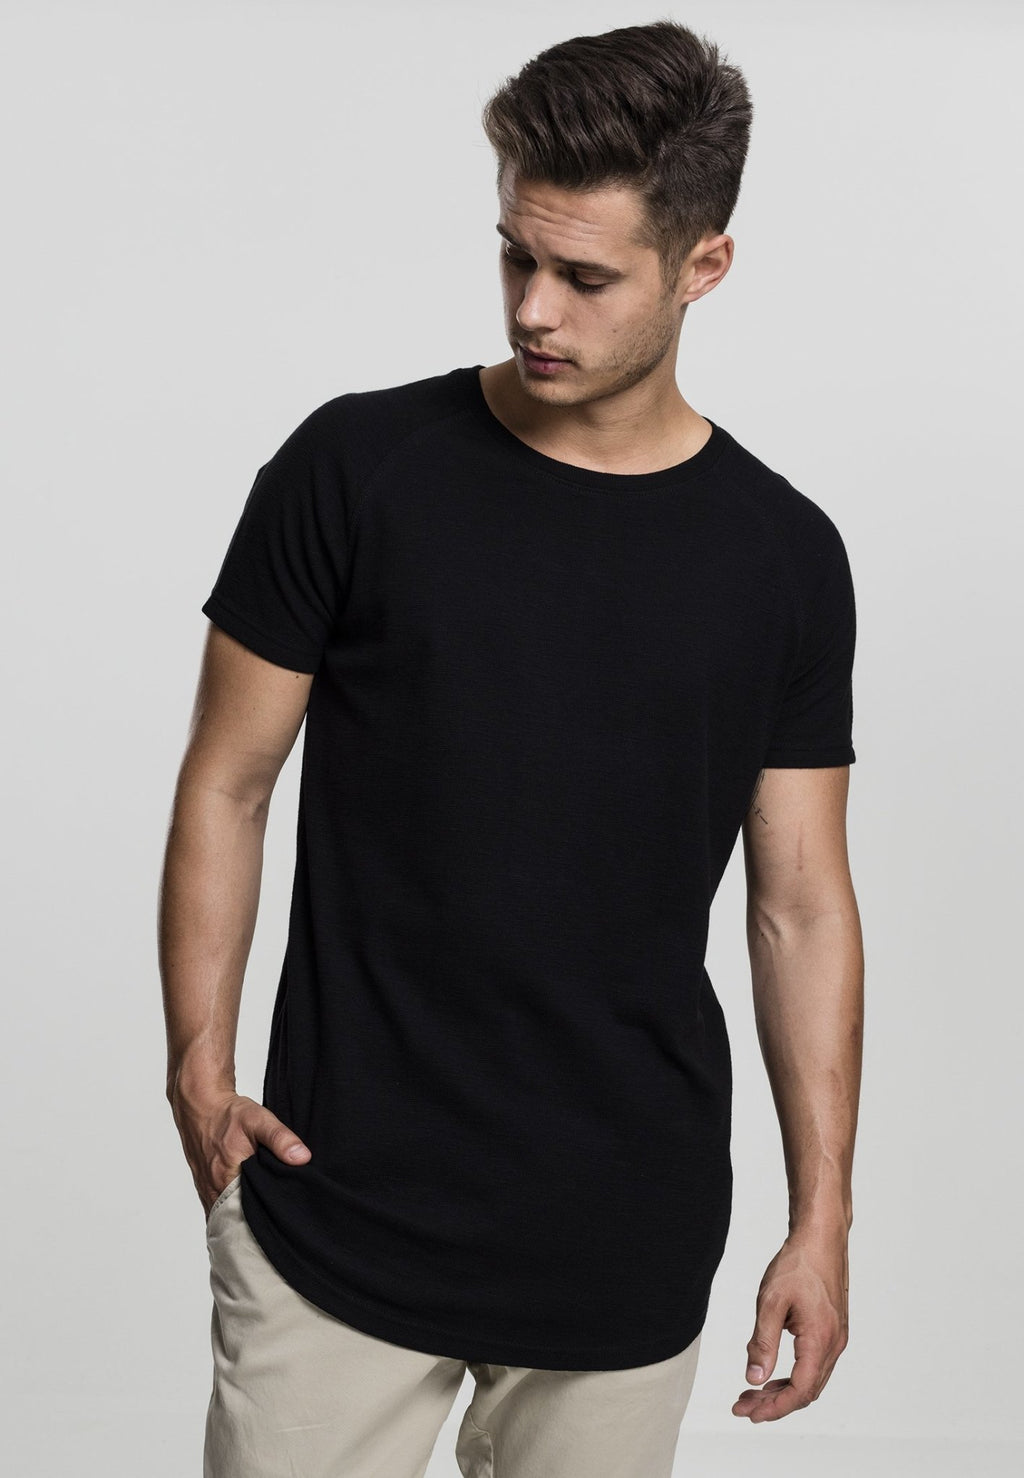 Thermal Slub Raglan Tee - Inexorebel